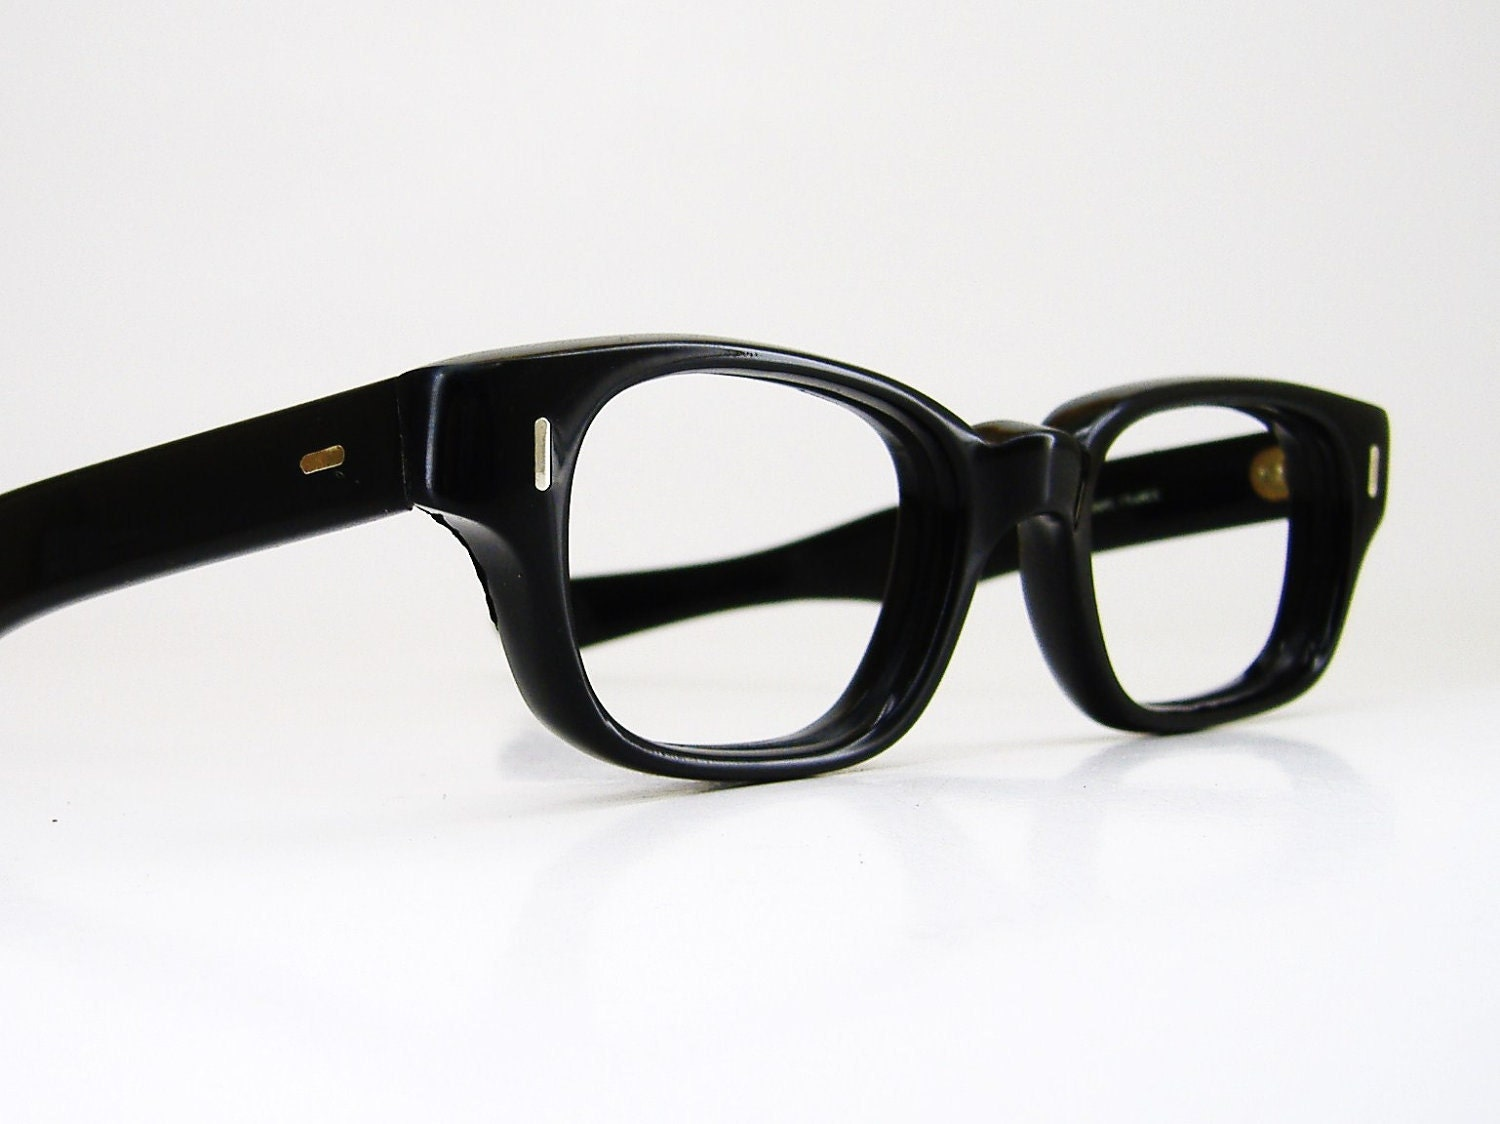 Find great deals on eBay for black rimmed glasses mens. Shop with confidence.